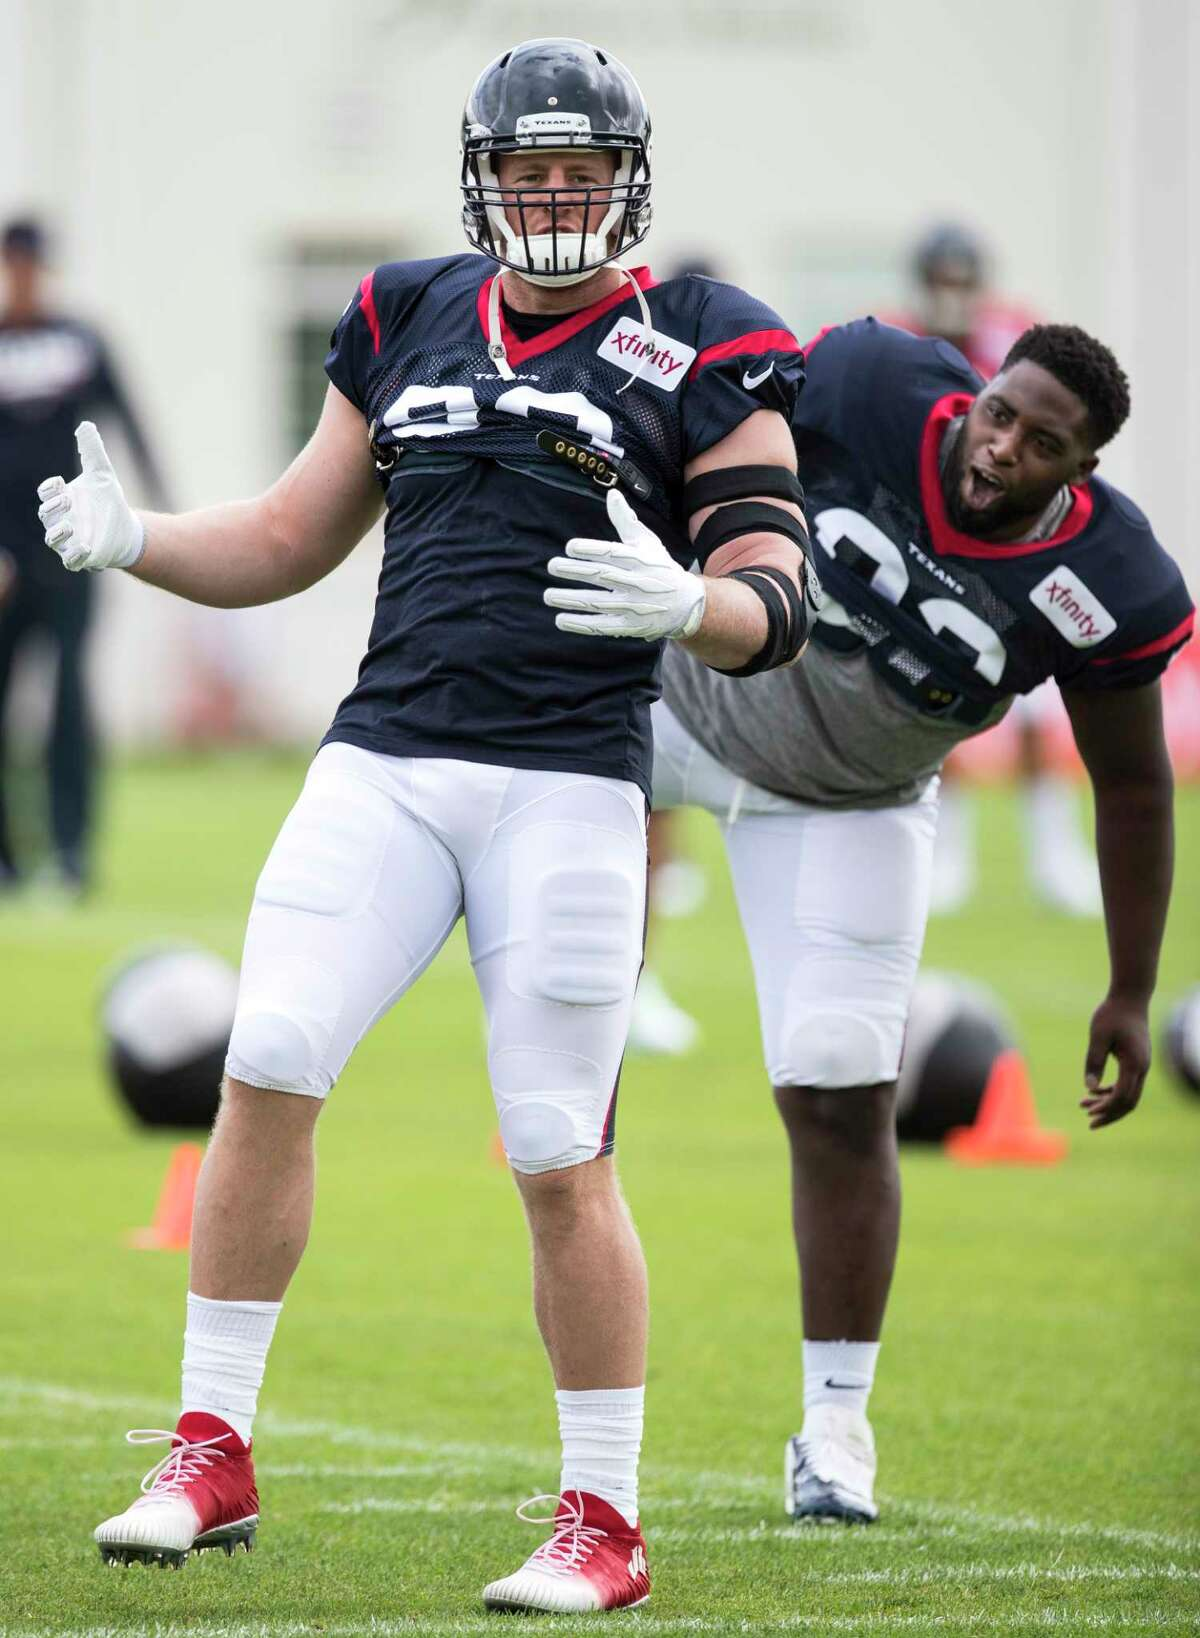 Houston Texans defensive end J.J. Watt (99) and Houston Texans defensive tackle Brandon Dunn (92) celebrate a call while playing 4-square before practice during training camp at the Greenbrier on Saturday, July 29, 2017, in White Sulphur Springs, W.Va.